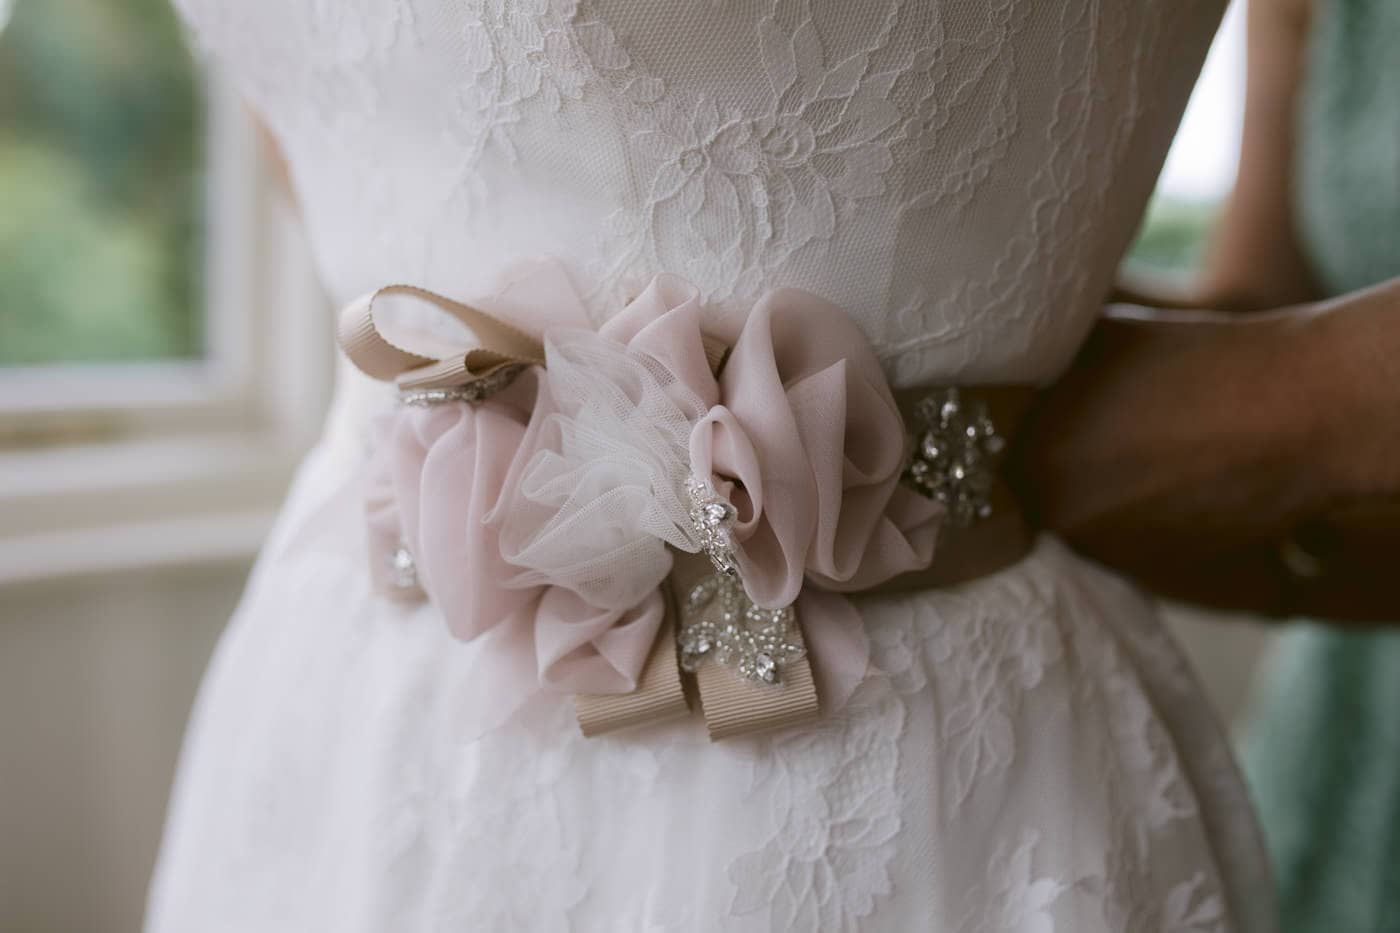 Belt Buckle and Tied Bun on Wedding Dress